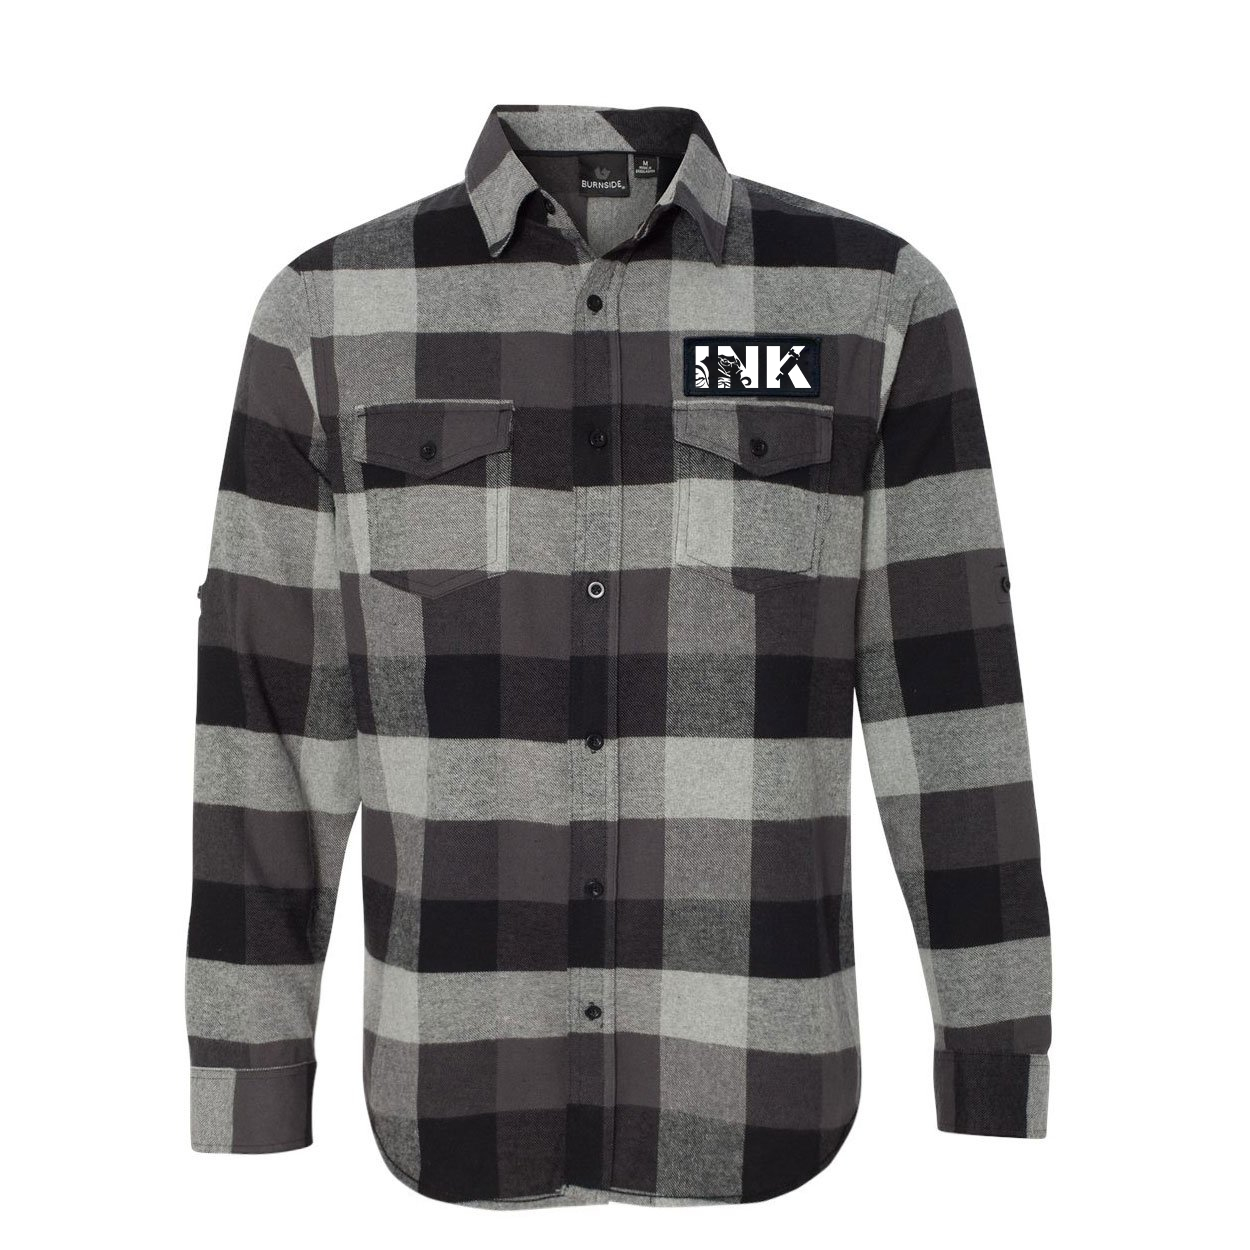 Ink Tattoo Logo Classic Unisex Long Sleeve Woven Patch Flannel Shirt Black/Gray (White Logo)